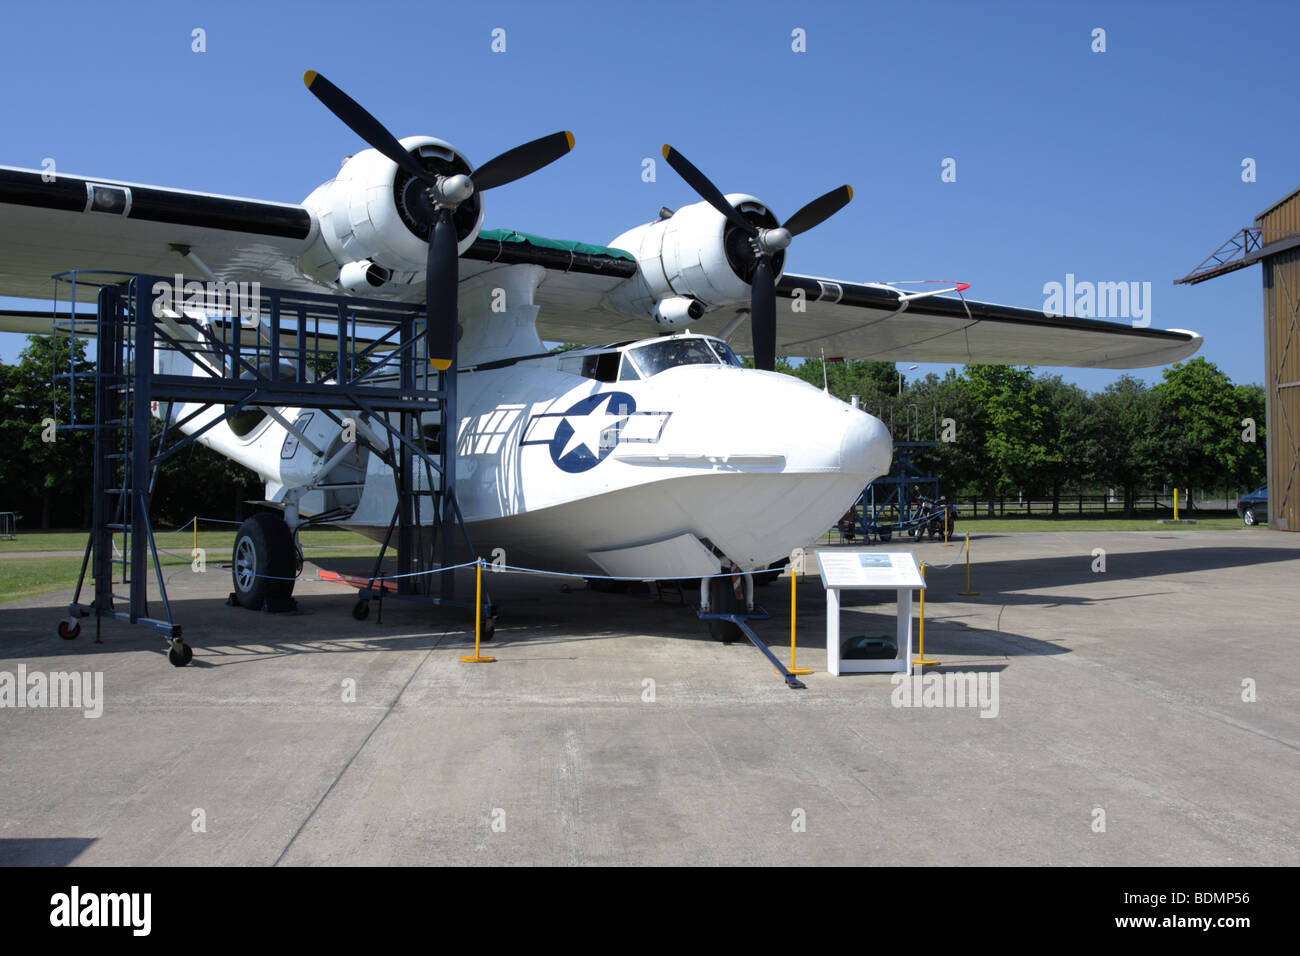 The Consolidated Catalina seaplane,currently on permanent display at Imperial War Museum,Duxford,England. - Stock Image